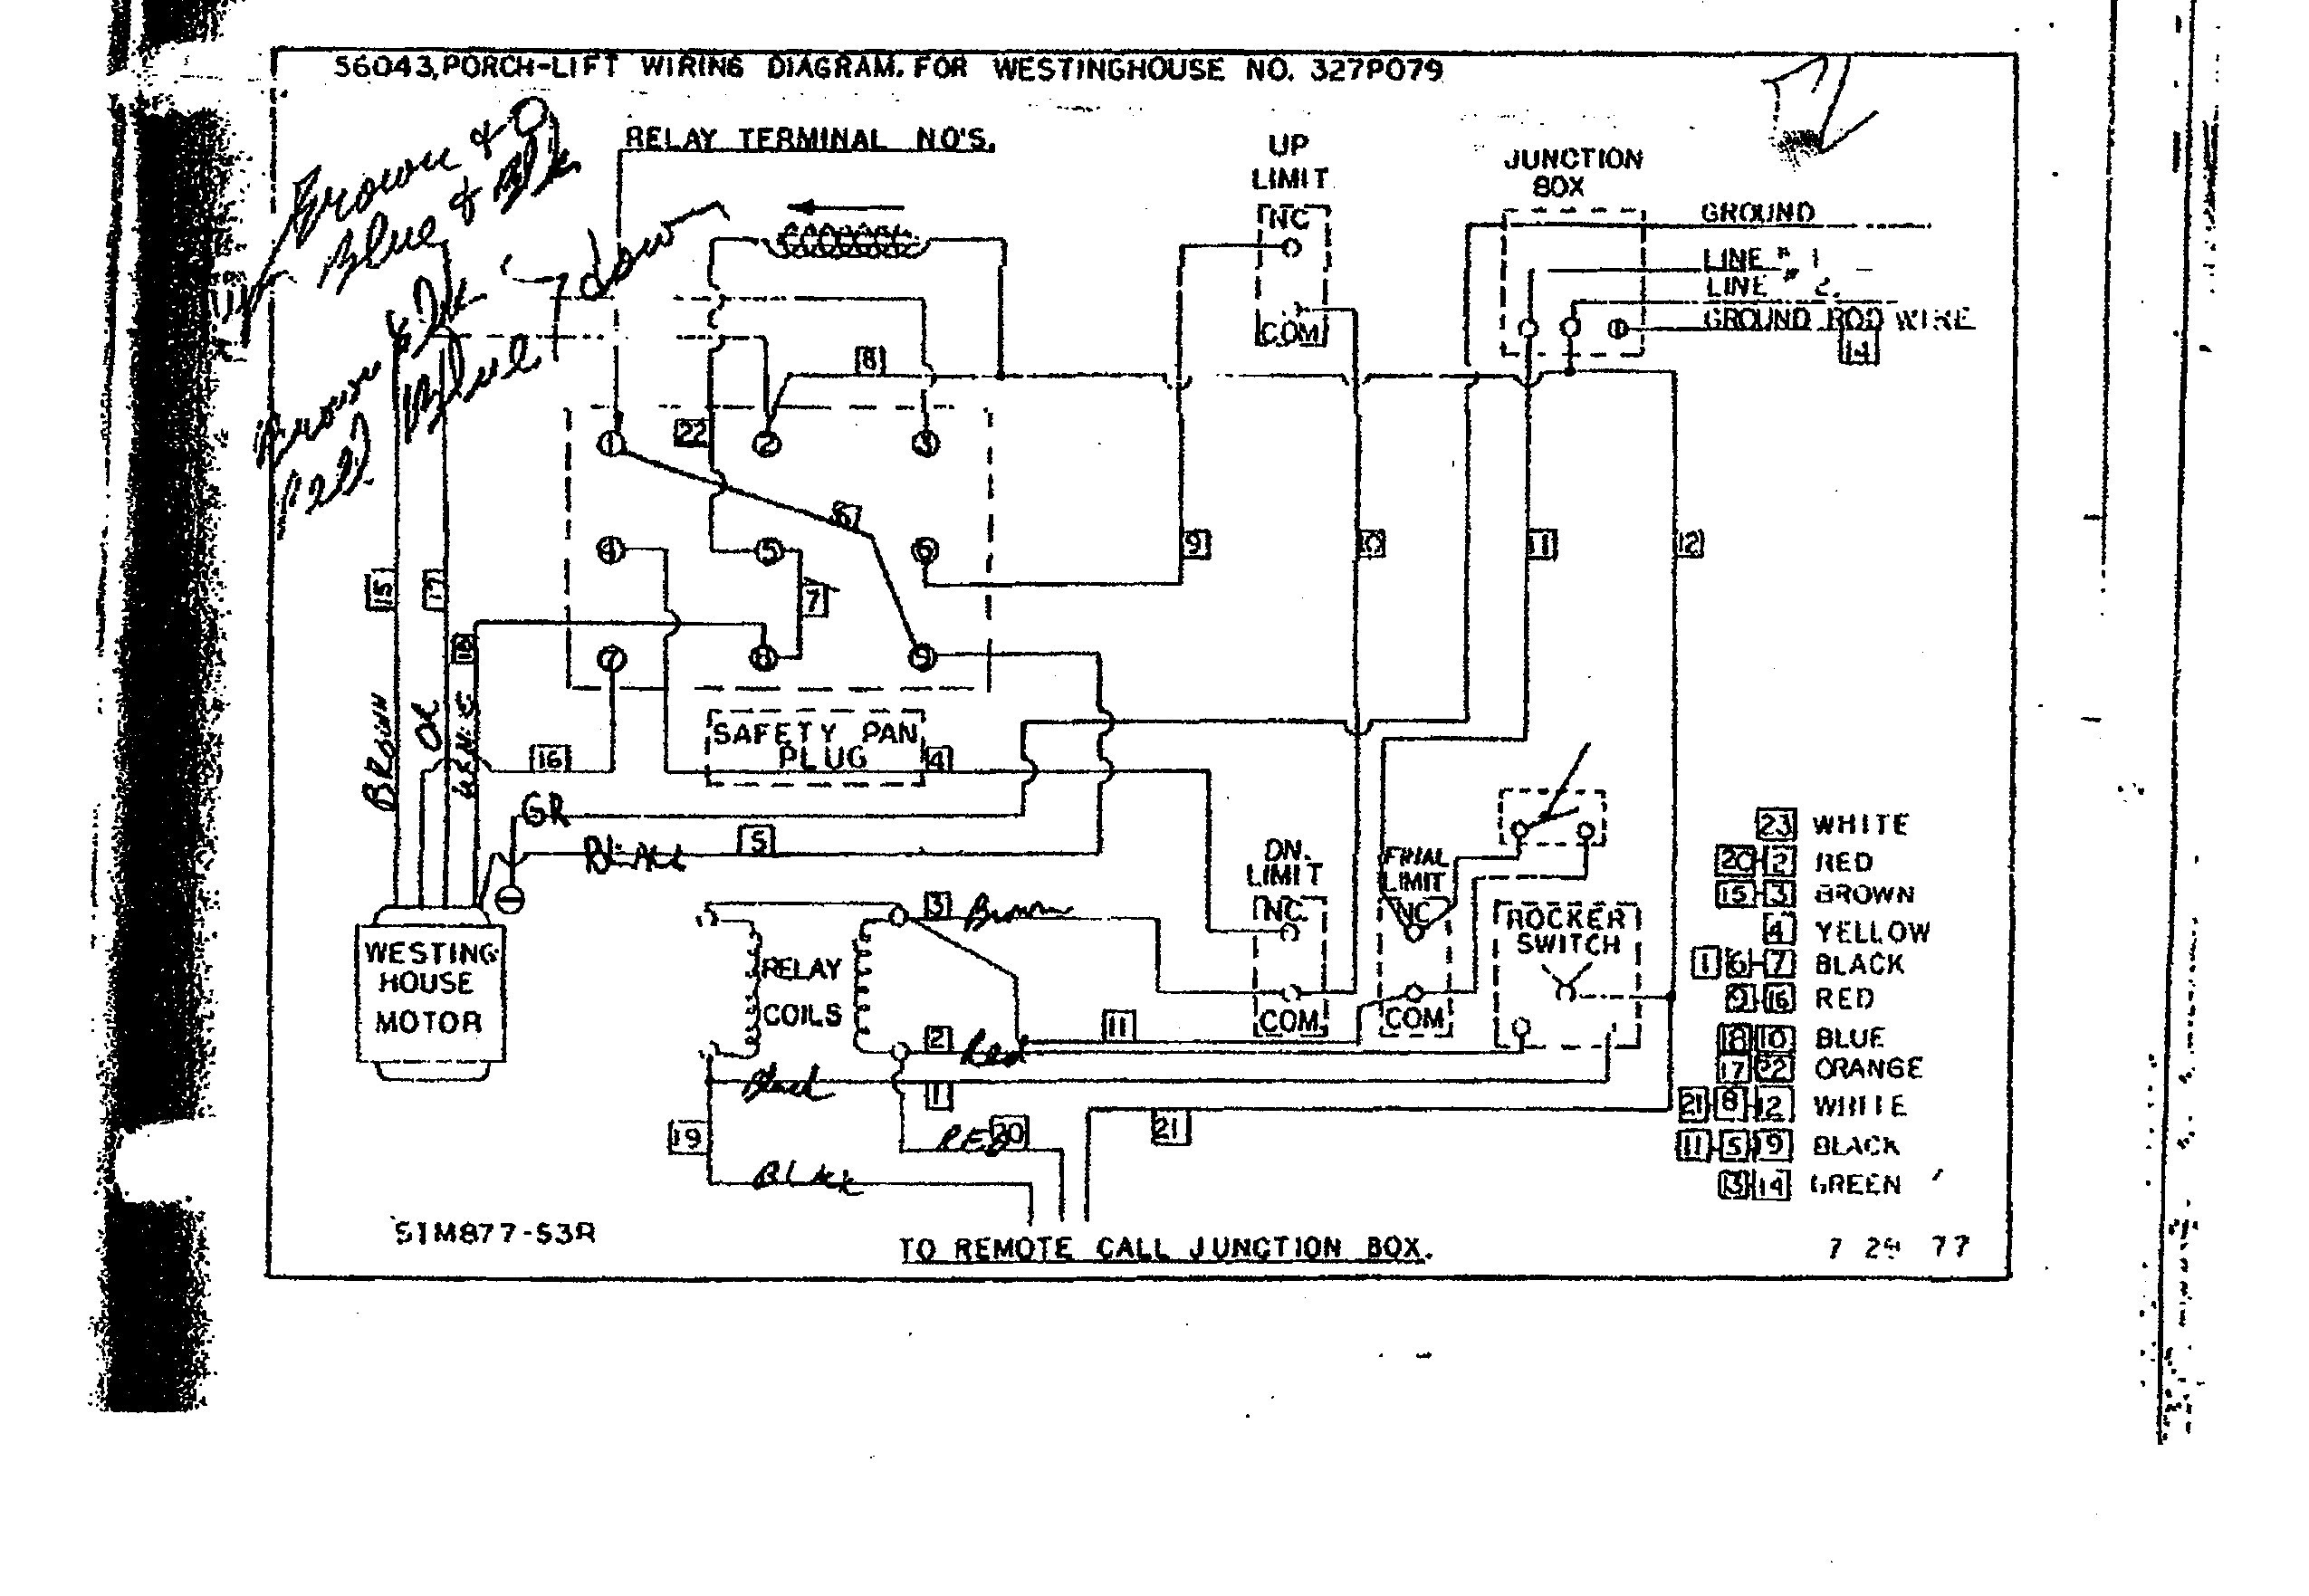 muncie pto wiring diagram awesome wiring diagram image westinghouse ds 416 wiring diagram westinghouse ds 416 wiring diagram westinghouse ds 416 wiring diagram westinghouse ds 416 wiring diagram